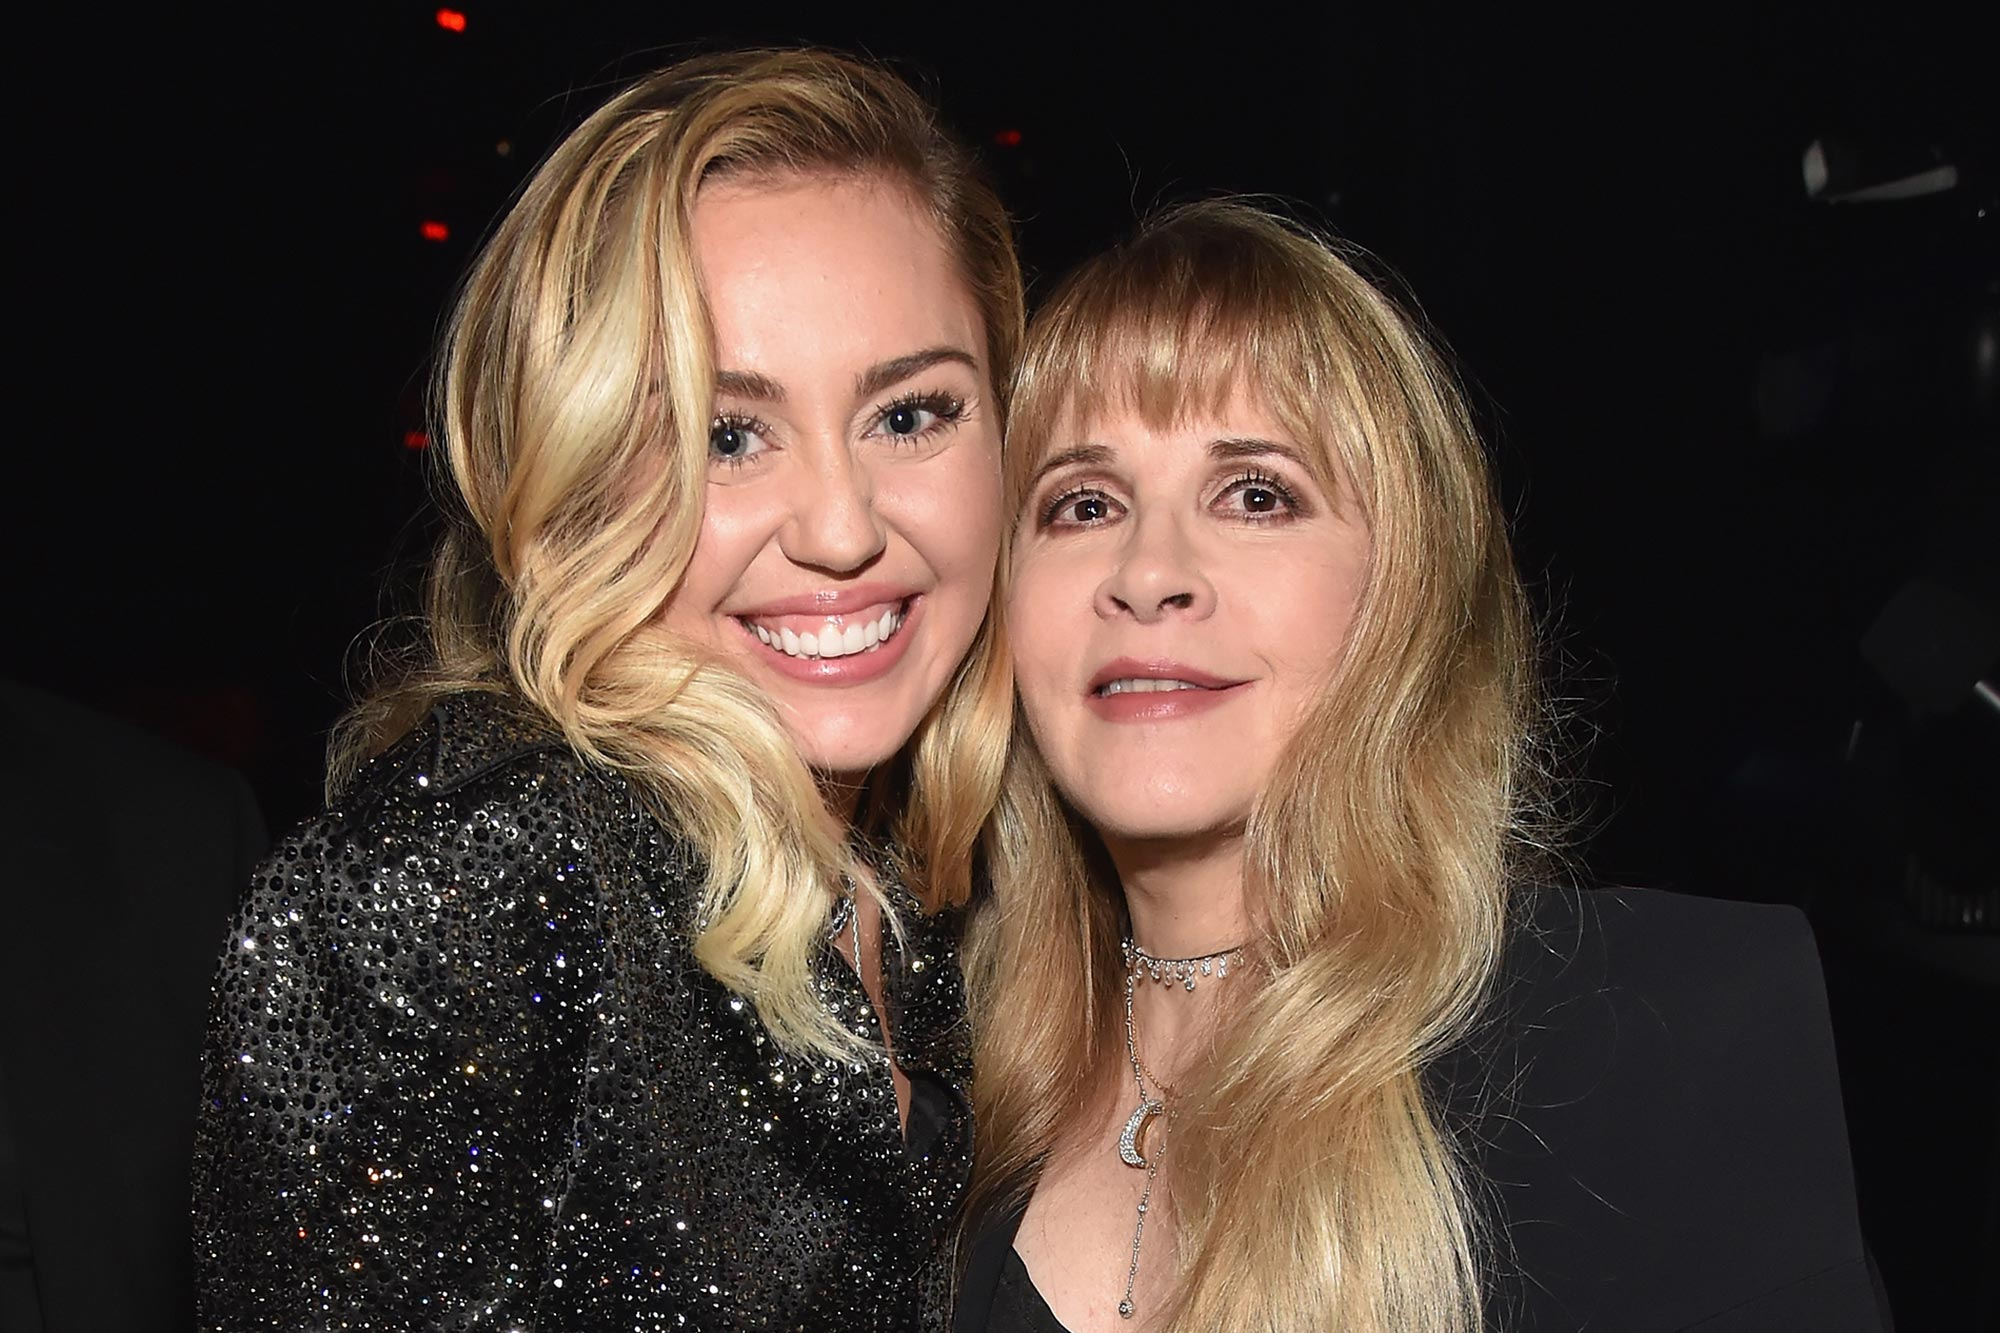 Miley Cyrus, Stevie Nicks drop new song 'Edge of Midnight' | EW.com